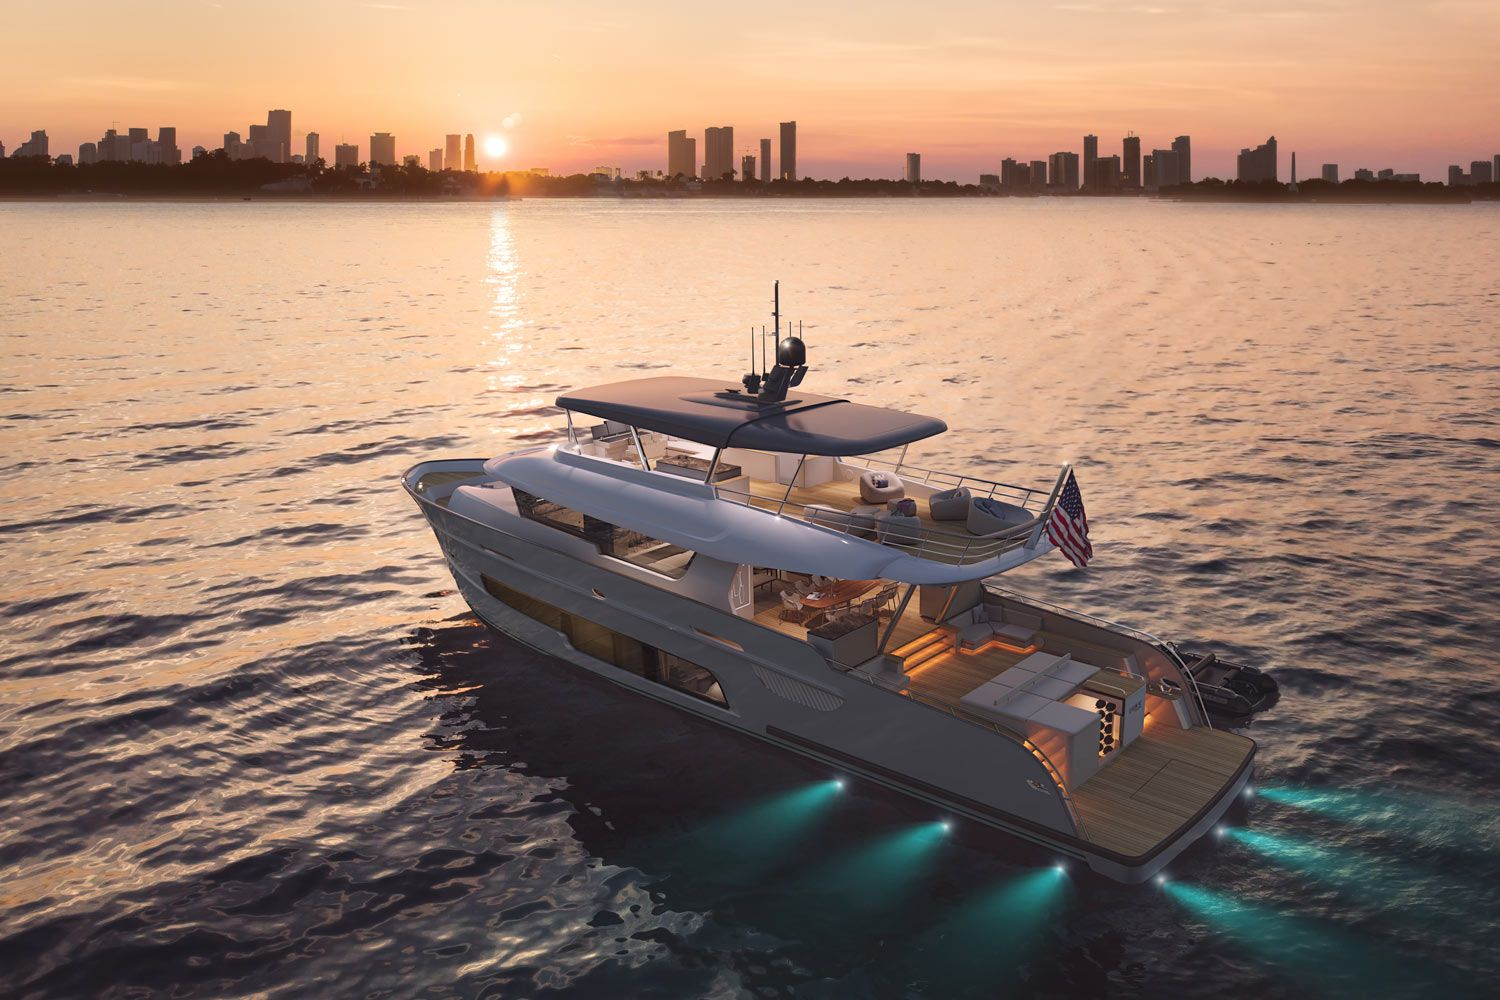 The LeVen 90 can reportedly cruise at 23 knots for 400 nautical miles and has a reported top speed of 26 knots.